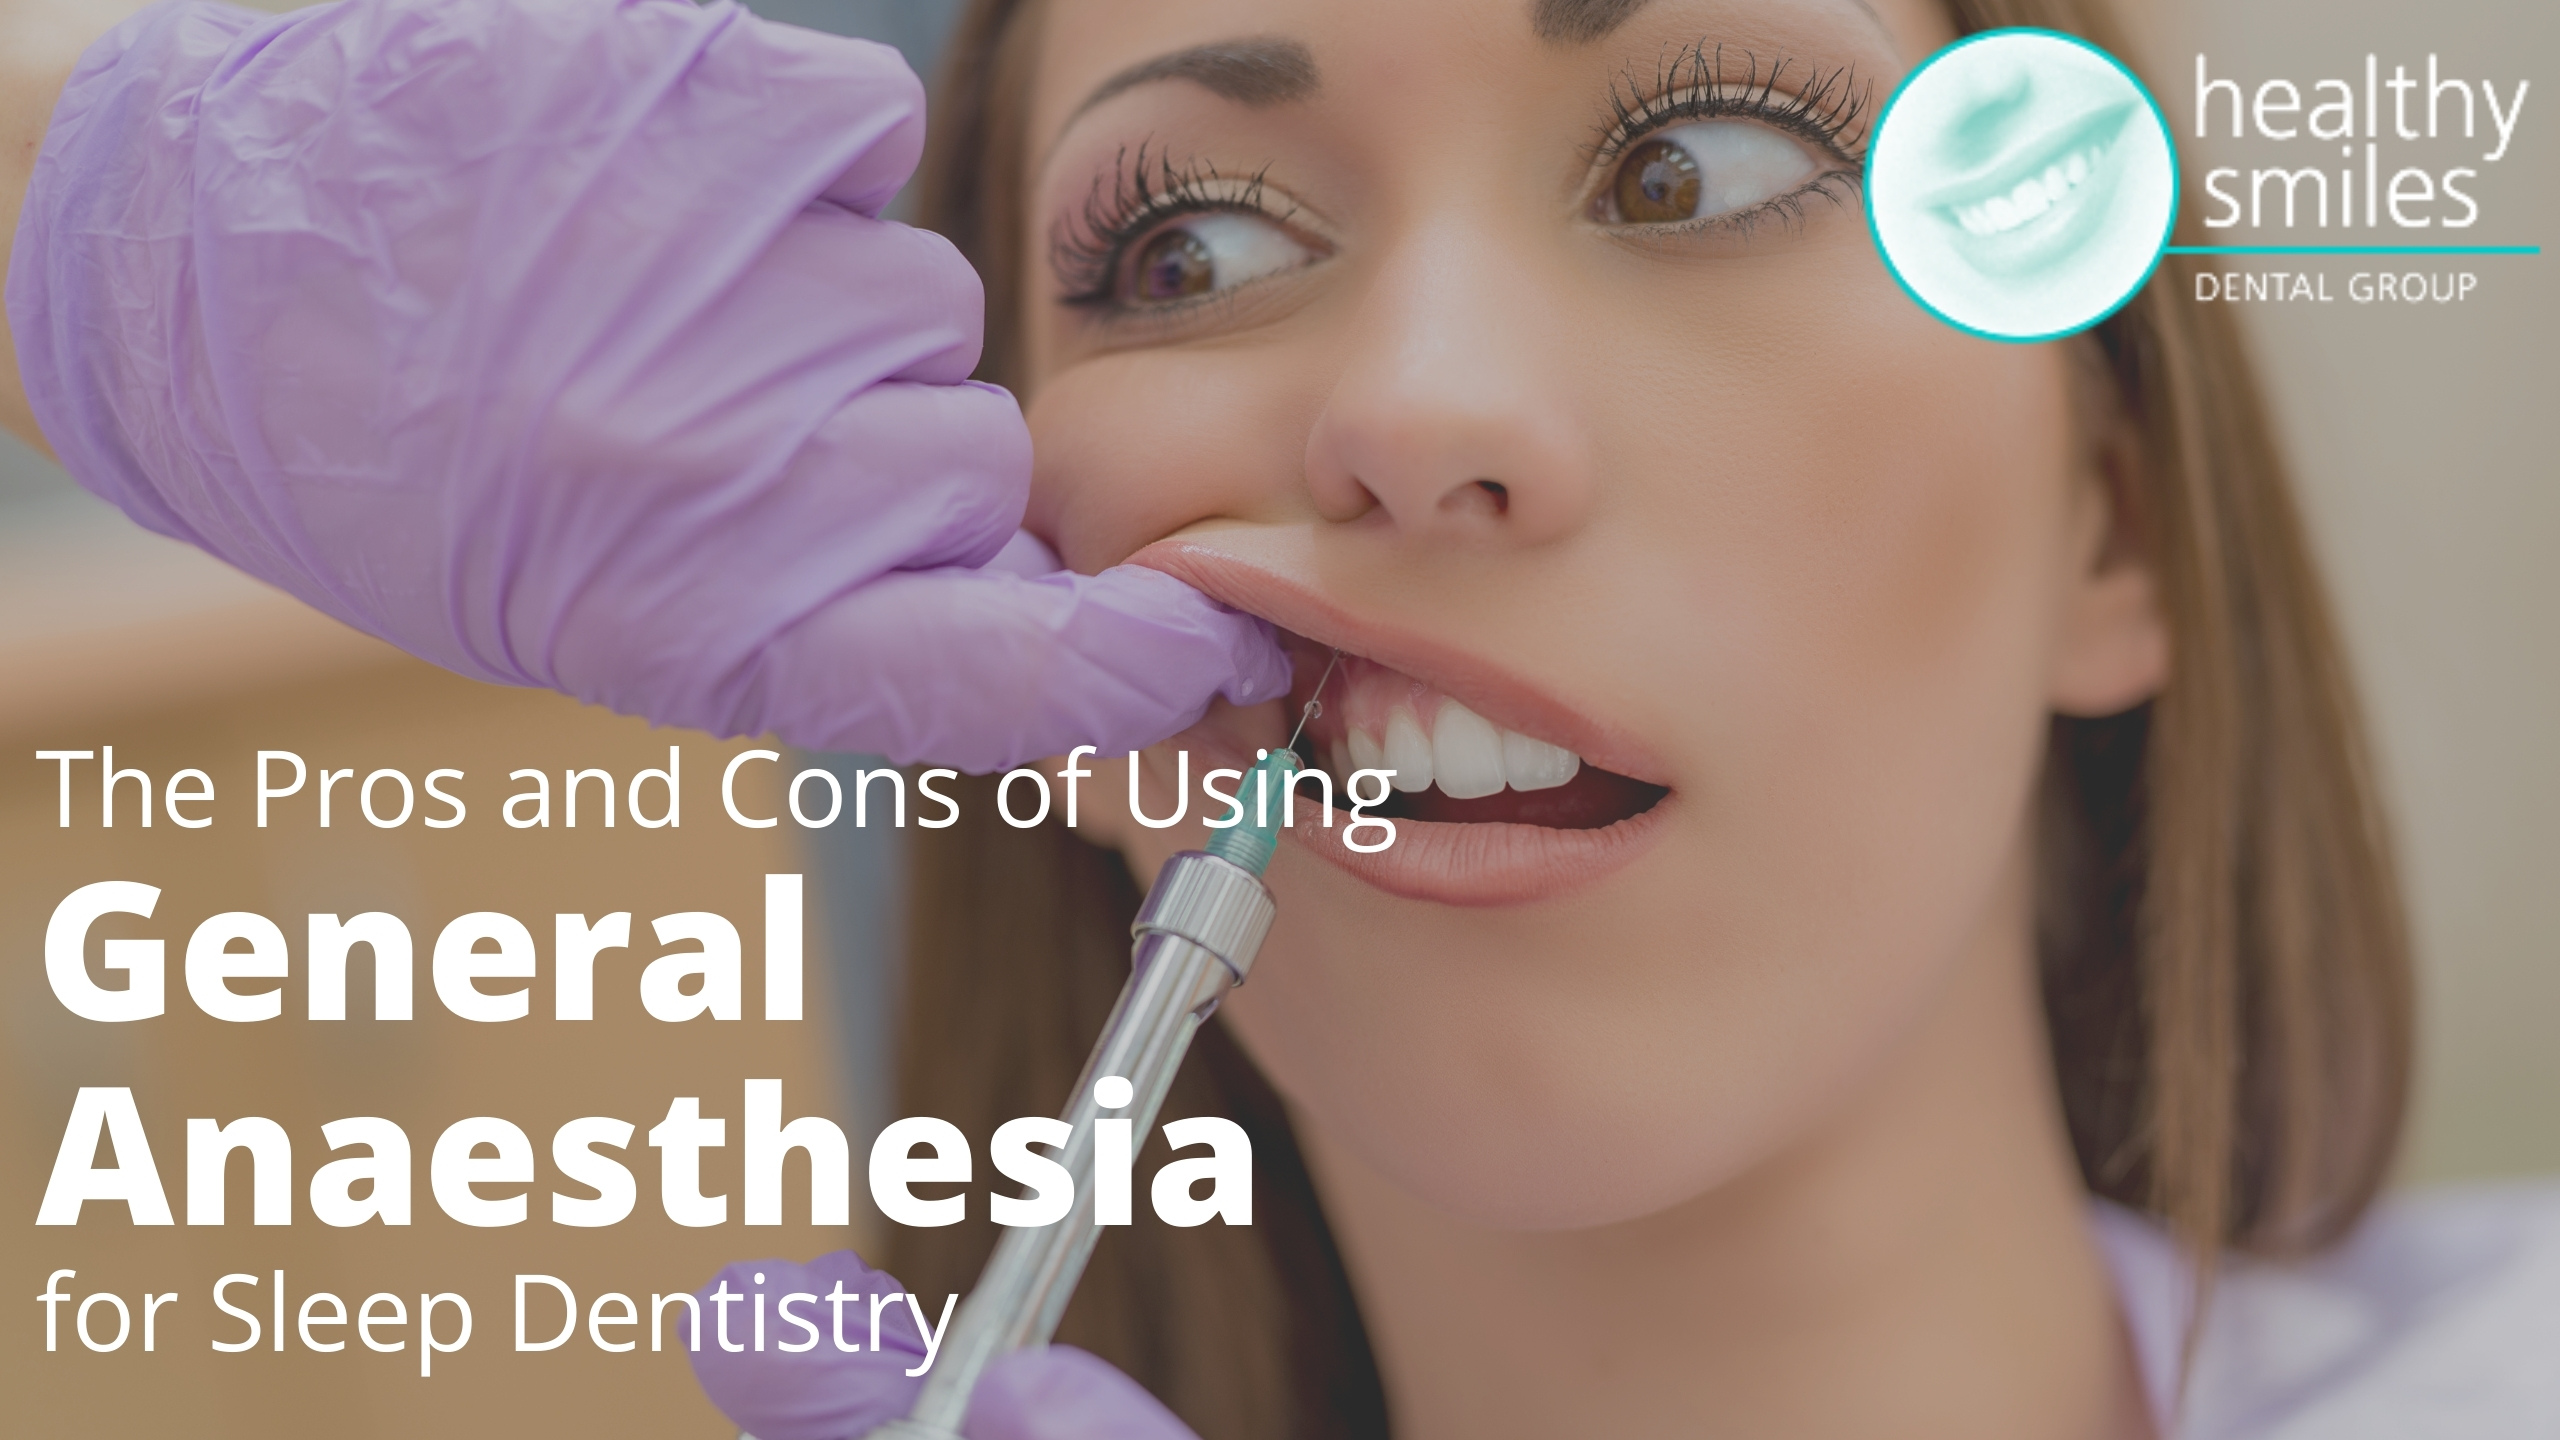 The Pros and Cons of Using General Anaesthesia for Sleep Dentistry